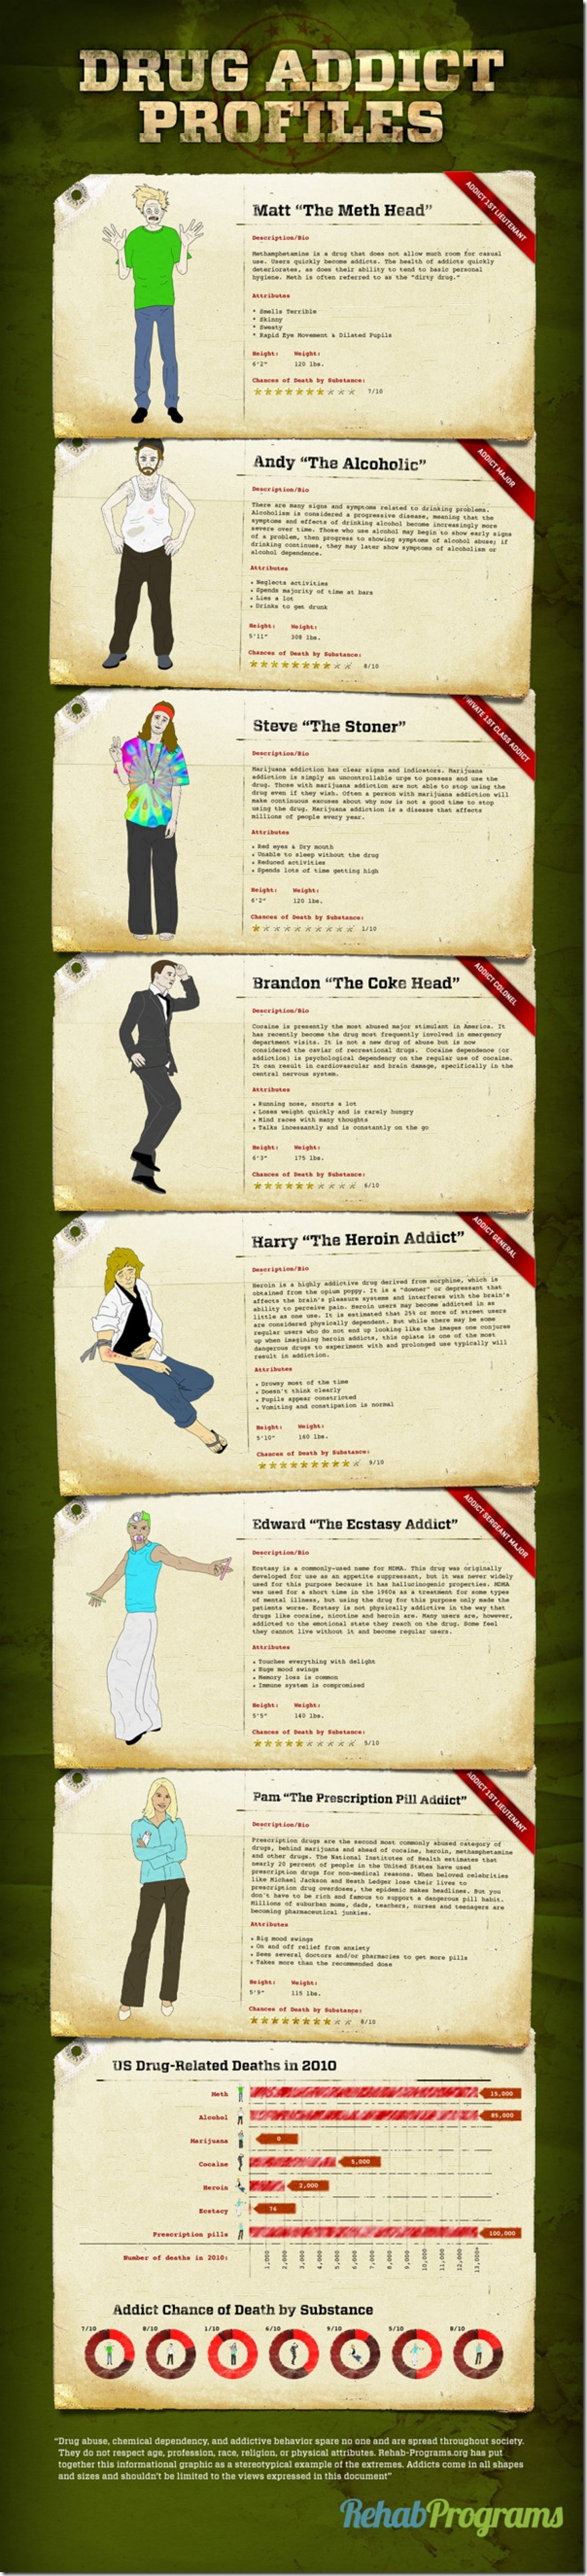 Drug Addict Profiles Infographic